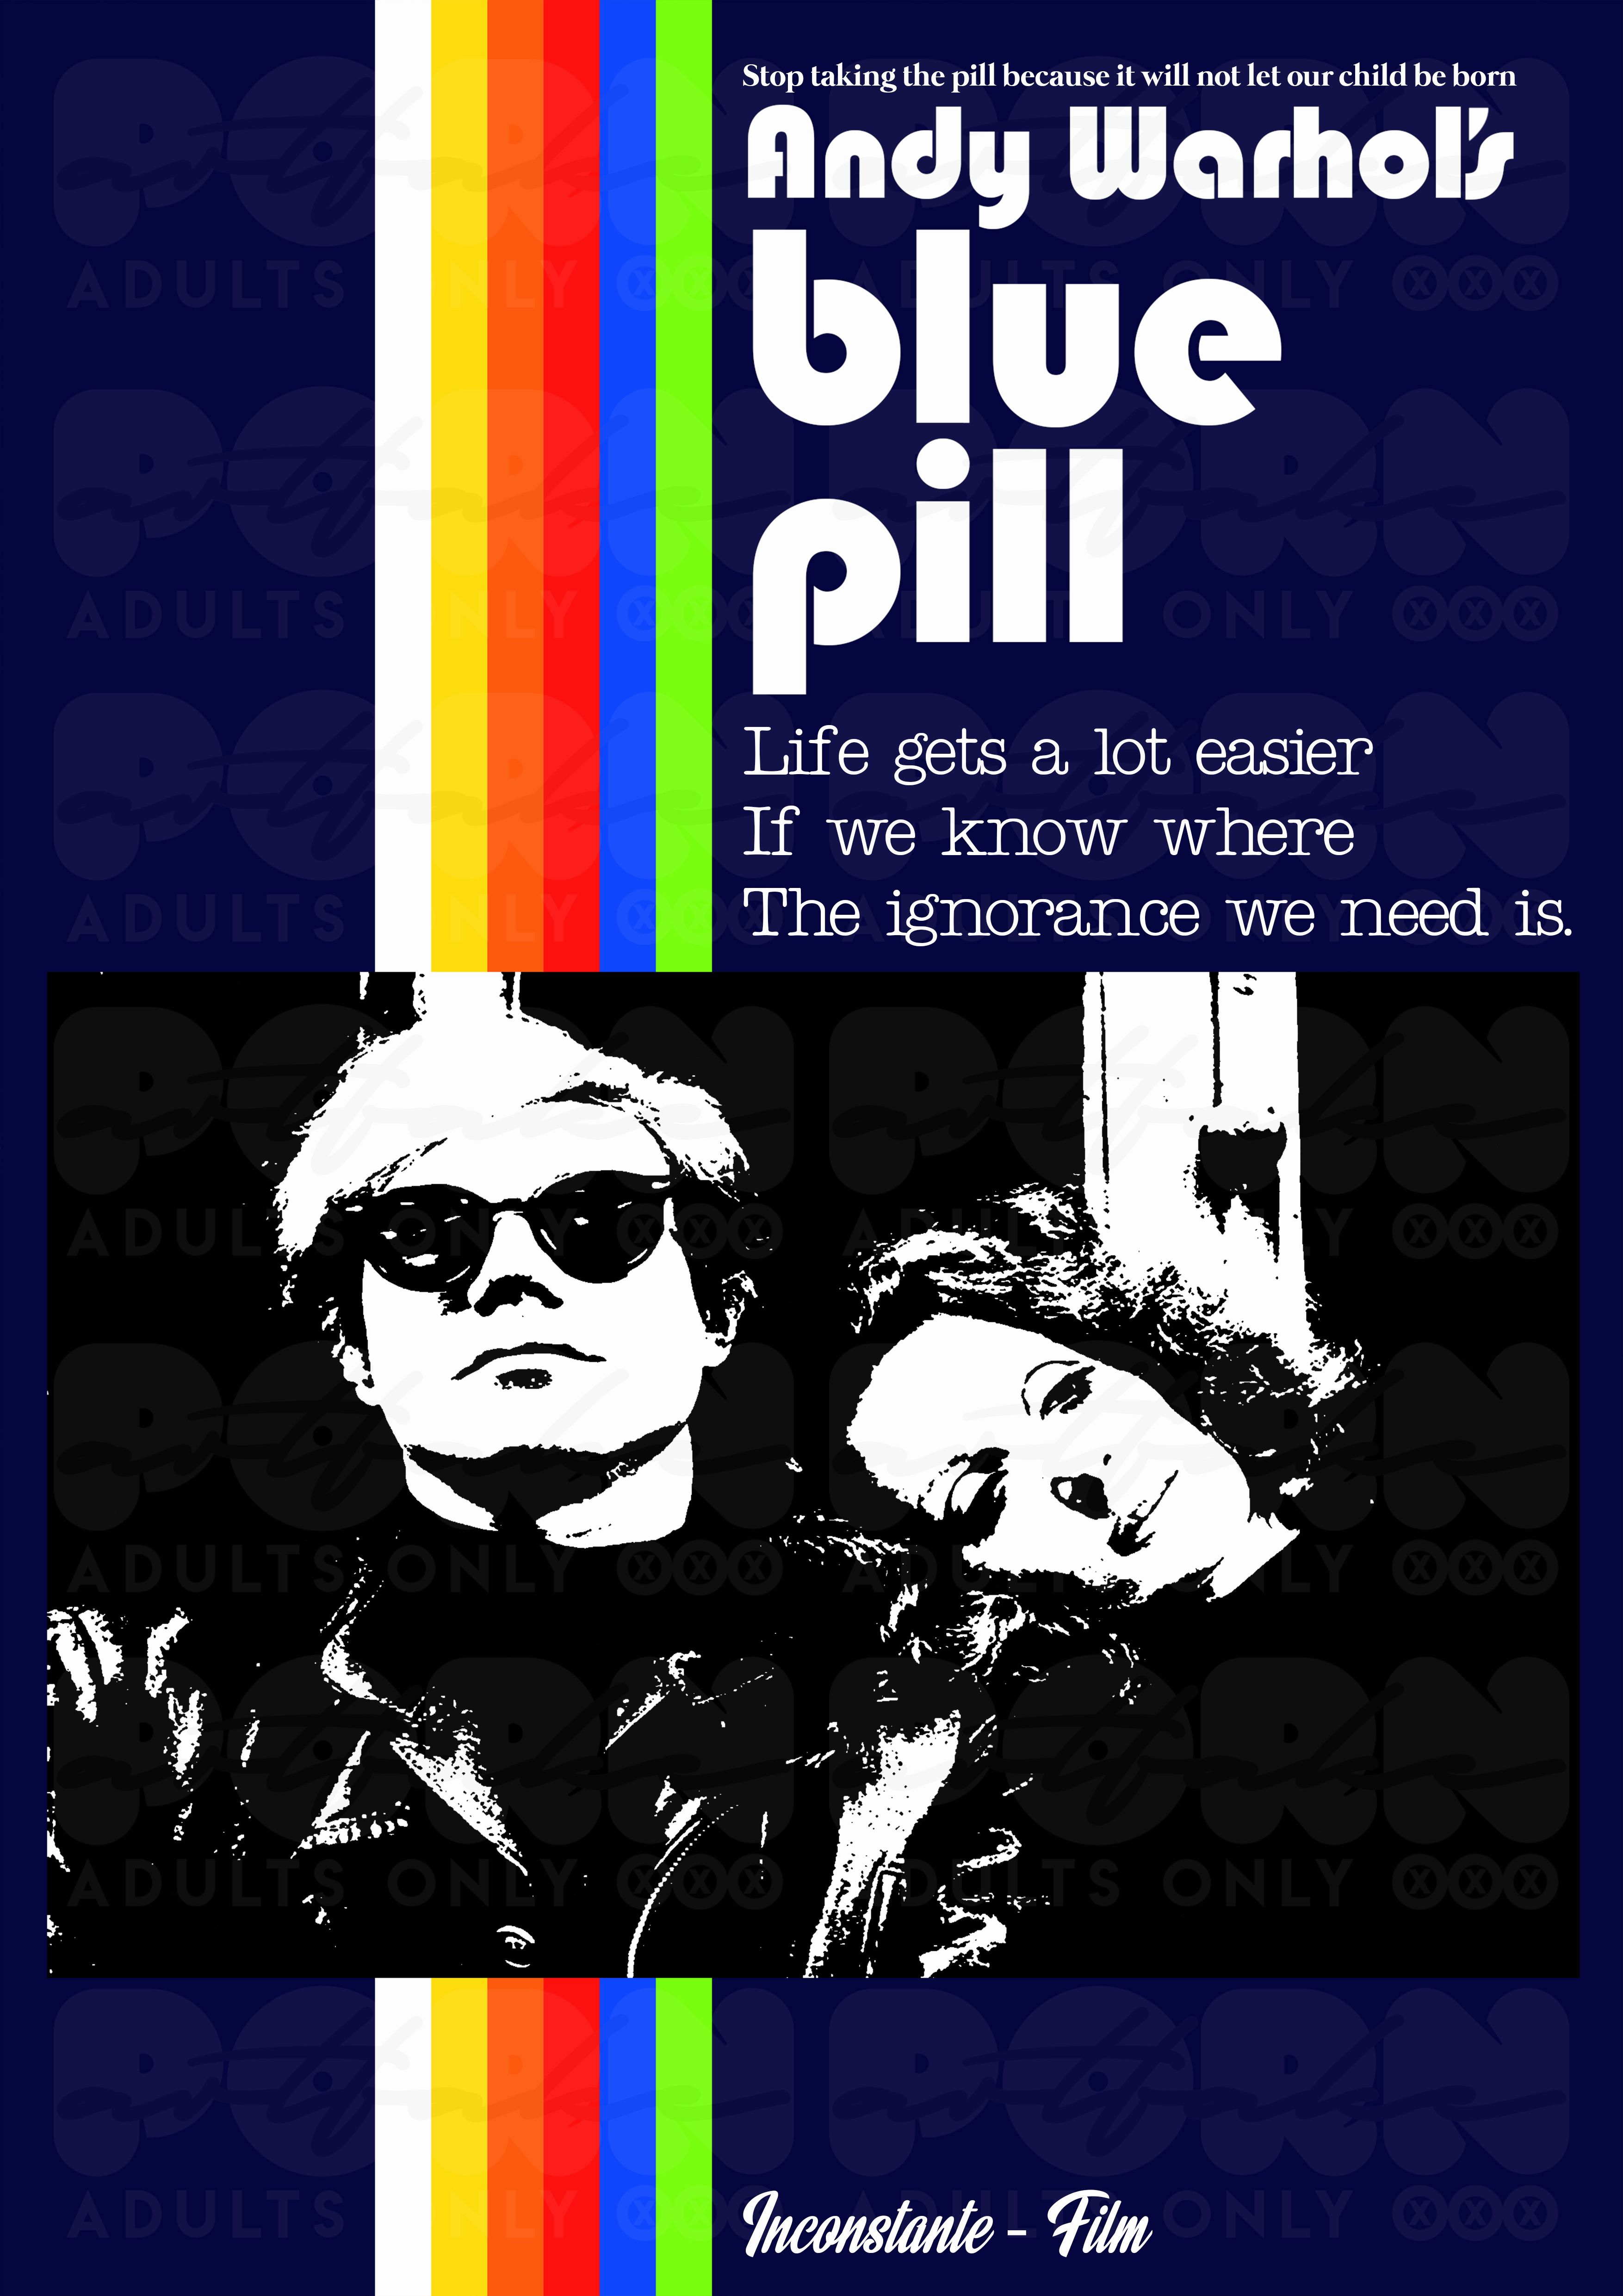 Blue Pill Blue Movie A Re Reading Of The Poster For The Movie Blue